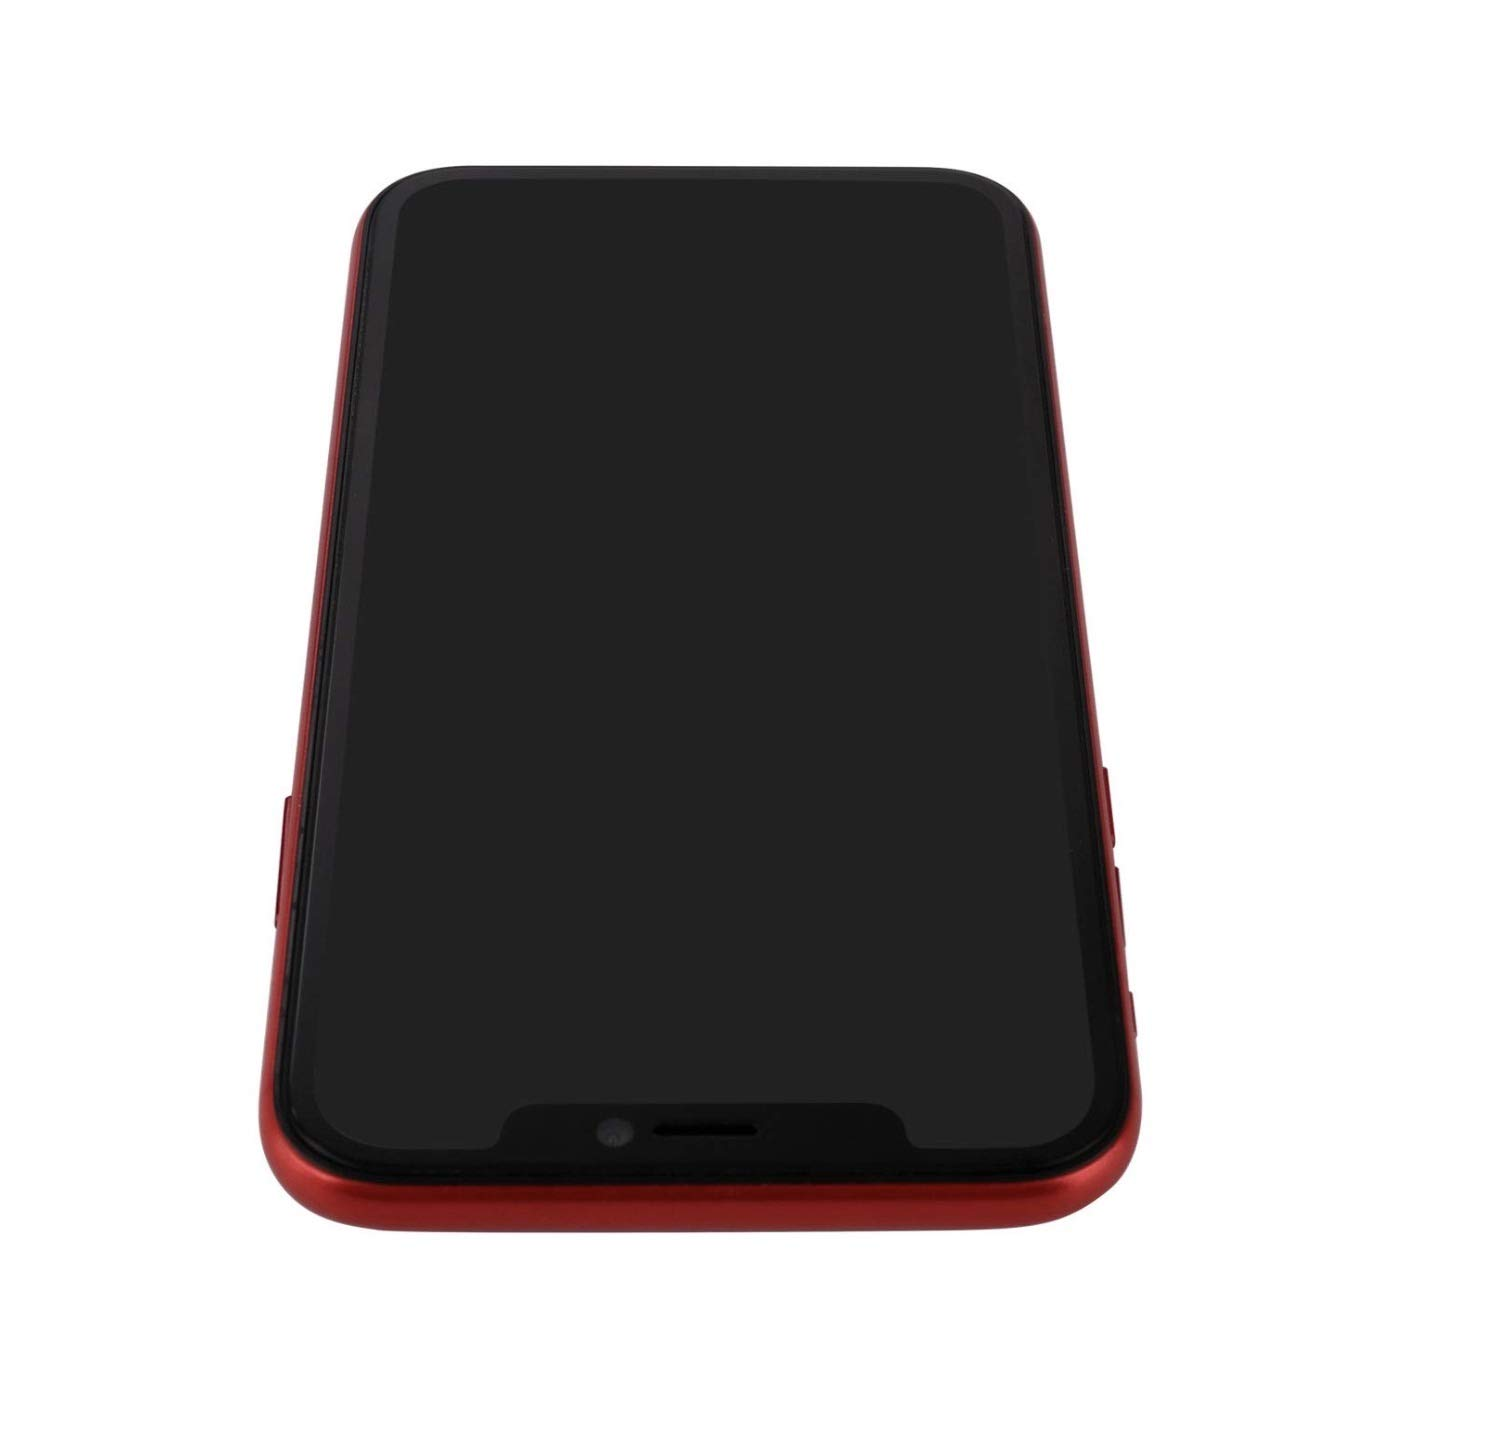 Dummy Fake Toy Phone Display Model for Phone XR 6.1 inches Dummy Non-Working 1:1 Cell Phone Plastic Toy